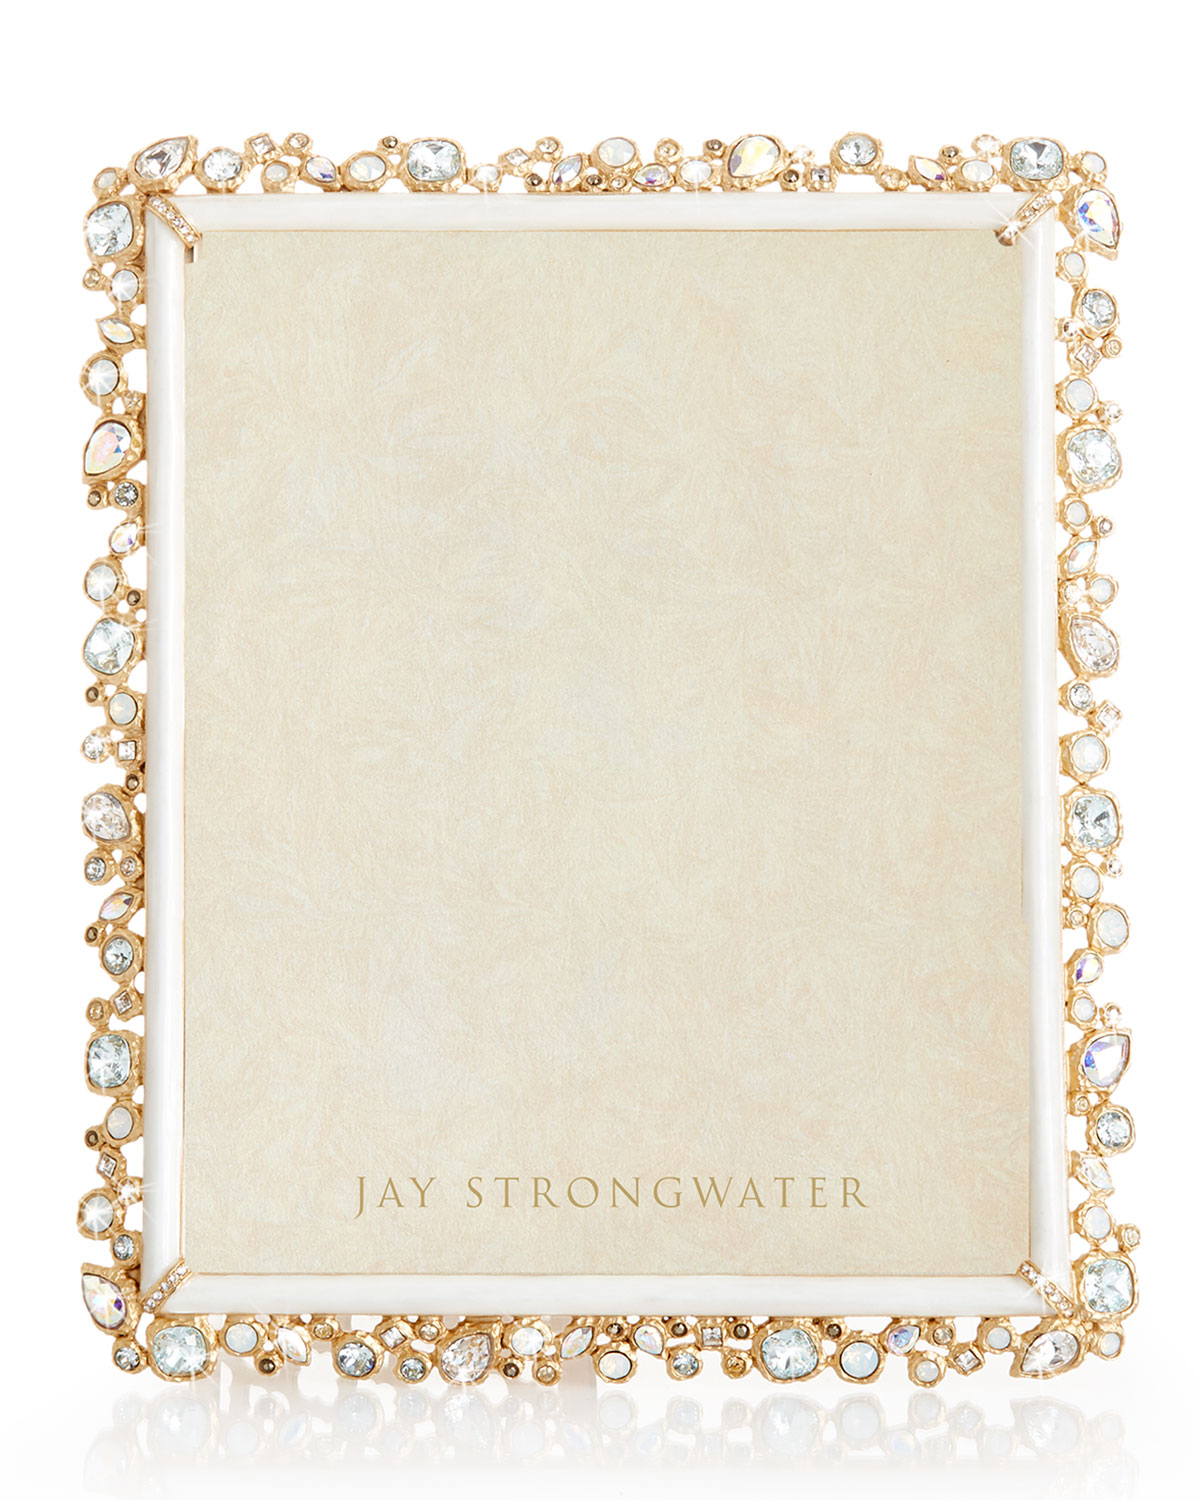 """Jay Strongwater BEJEWELED FRAME, 8"""" X 10"""""""